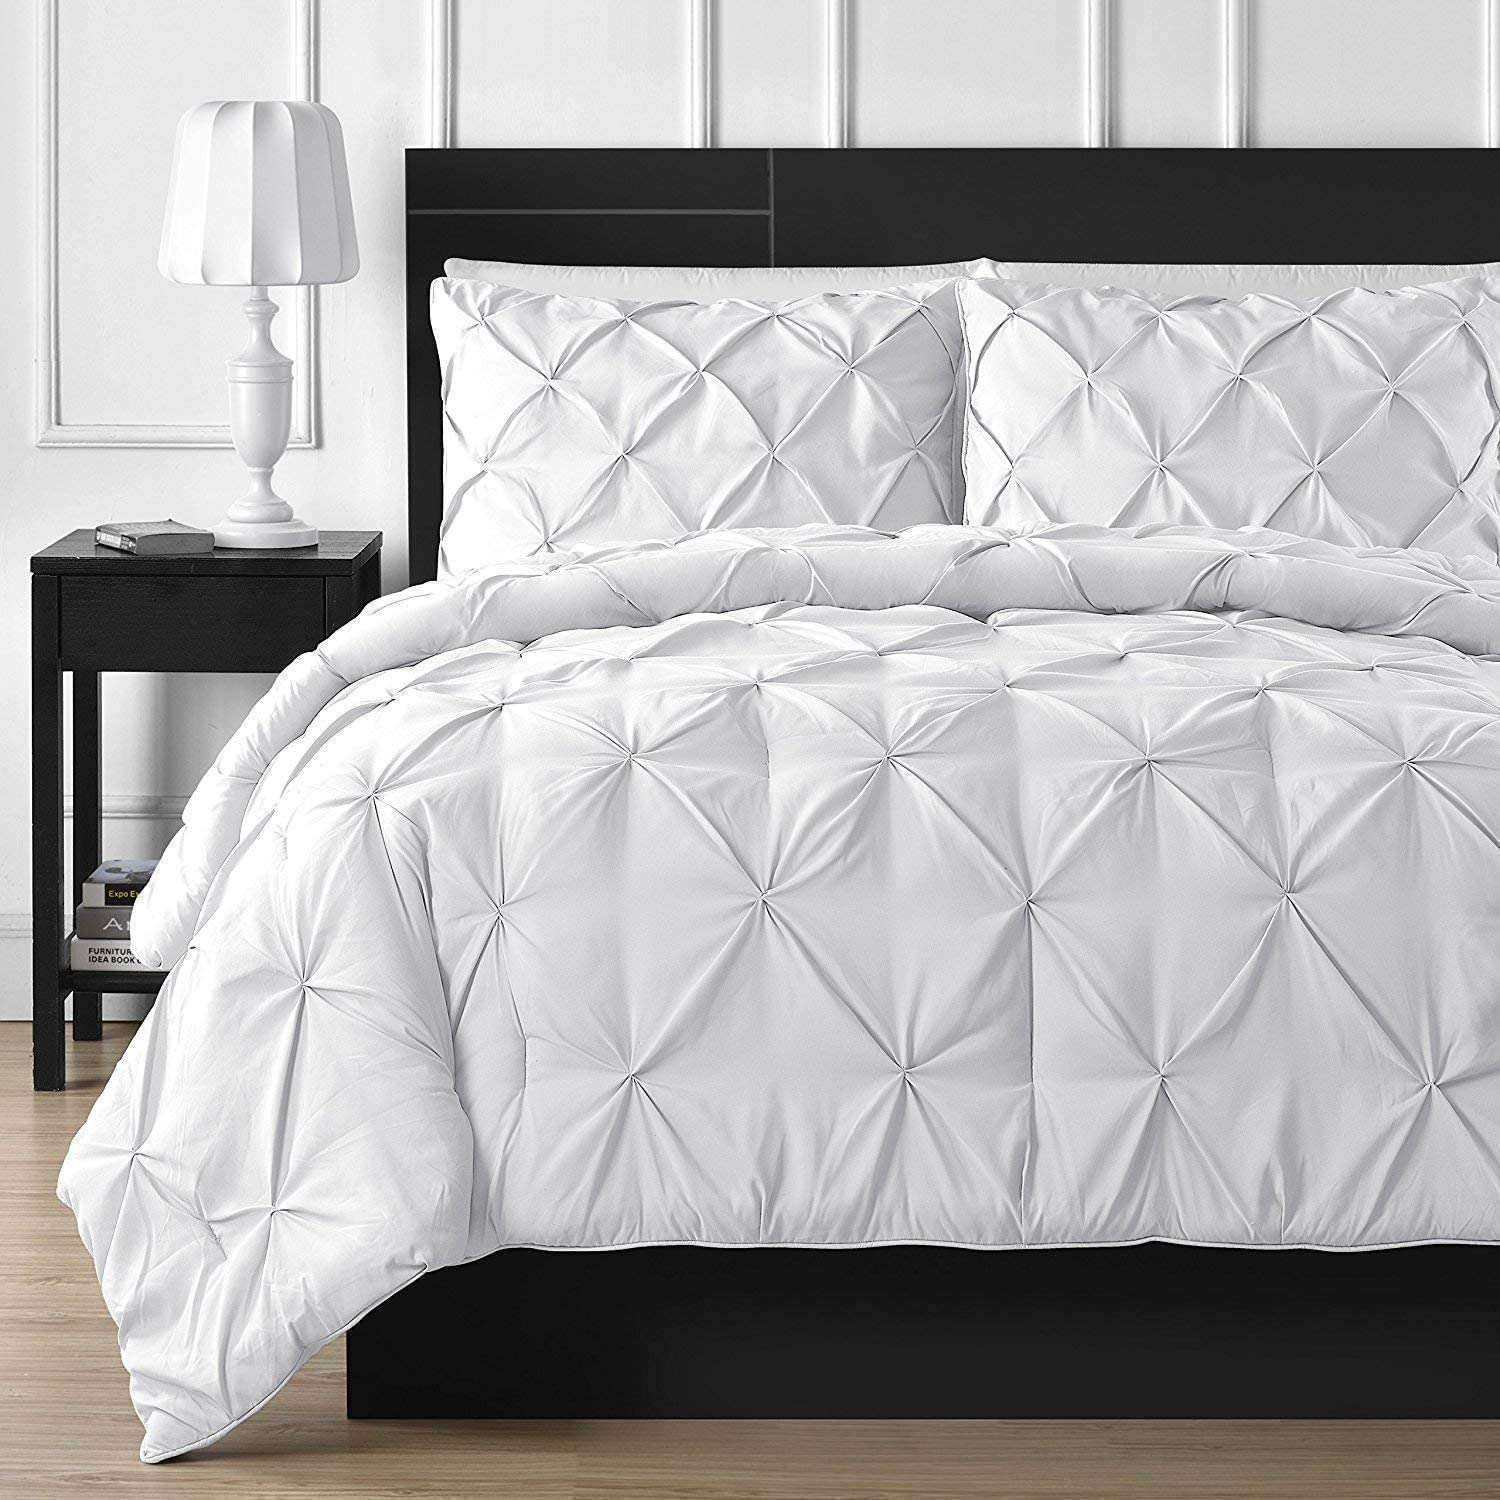 Crown Collection Luxuriate Hotel 1000-TC So Ultra Tulsa Mall Ranking TOP7 Hypoallergenic